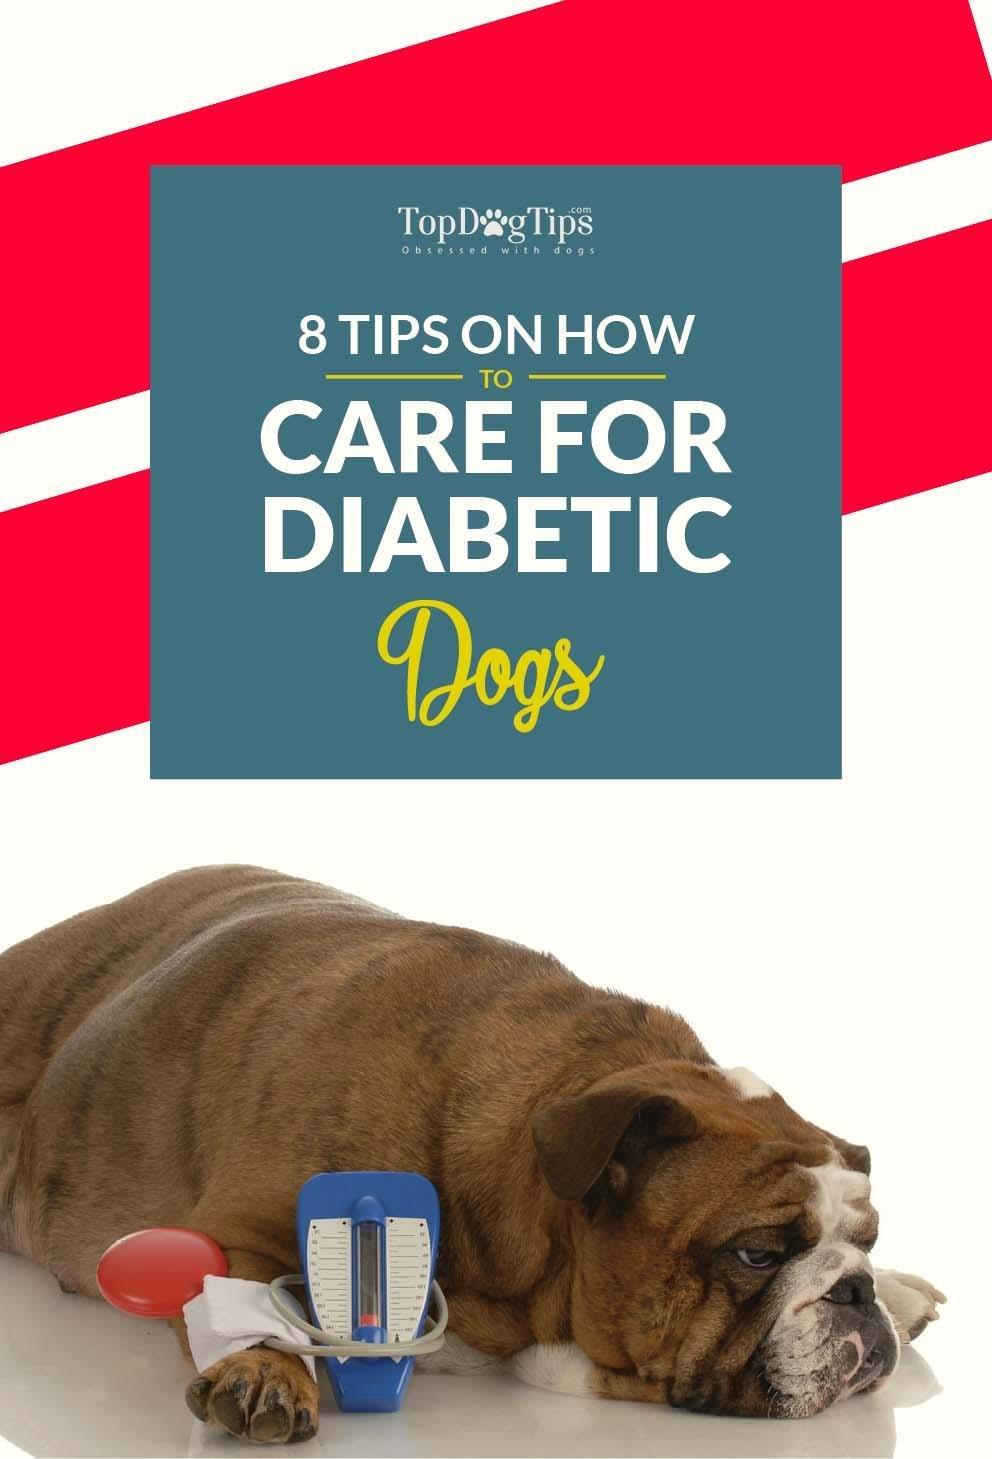 8 Expert Tips On How To Care For A Diabetic Dog